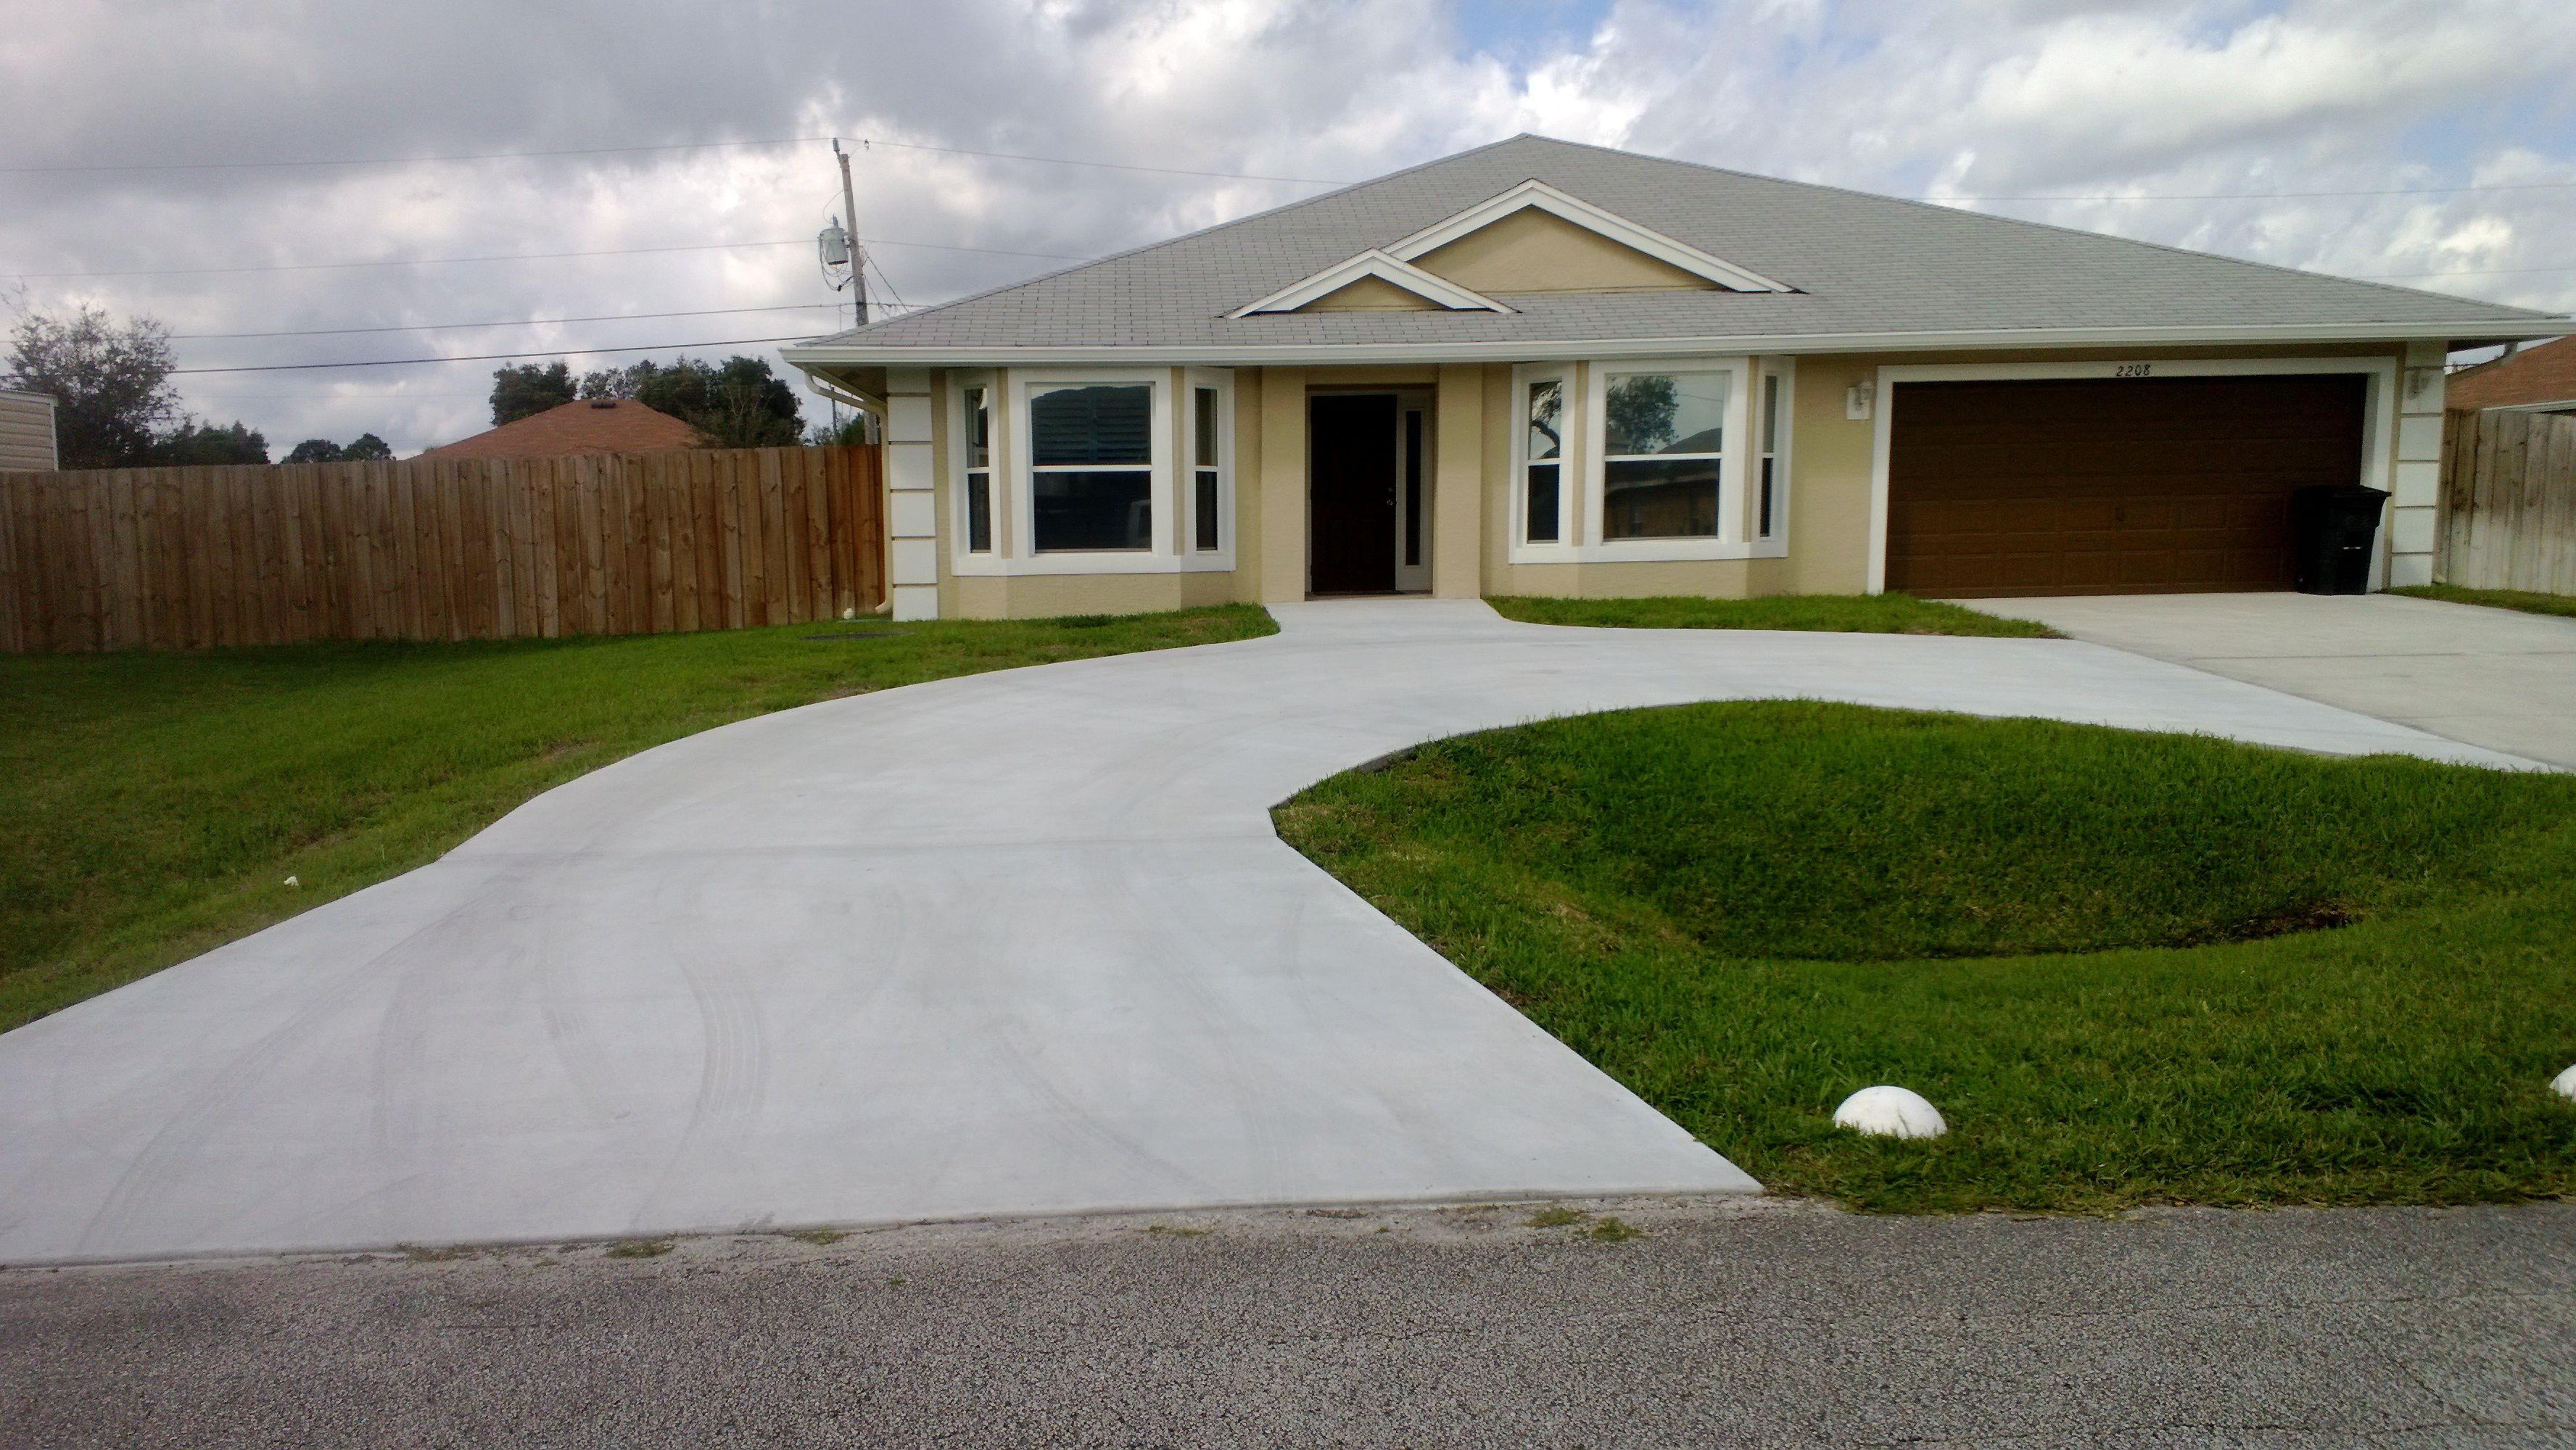 Circle driveway for the home pinterest for Semi circle driveway ideas